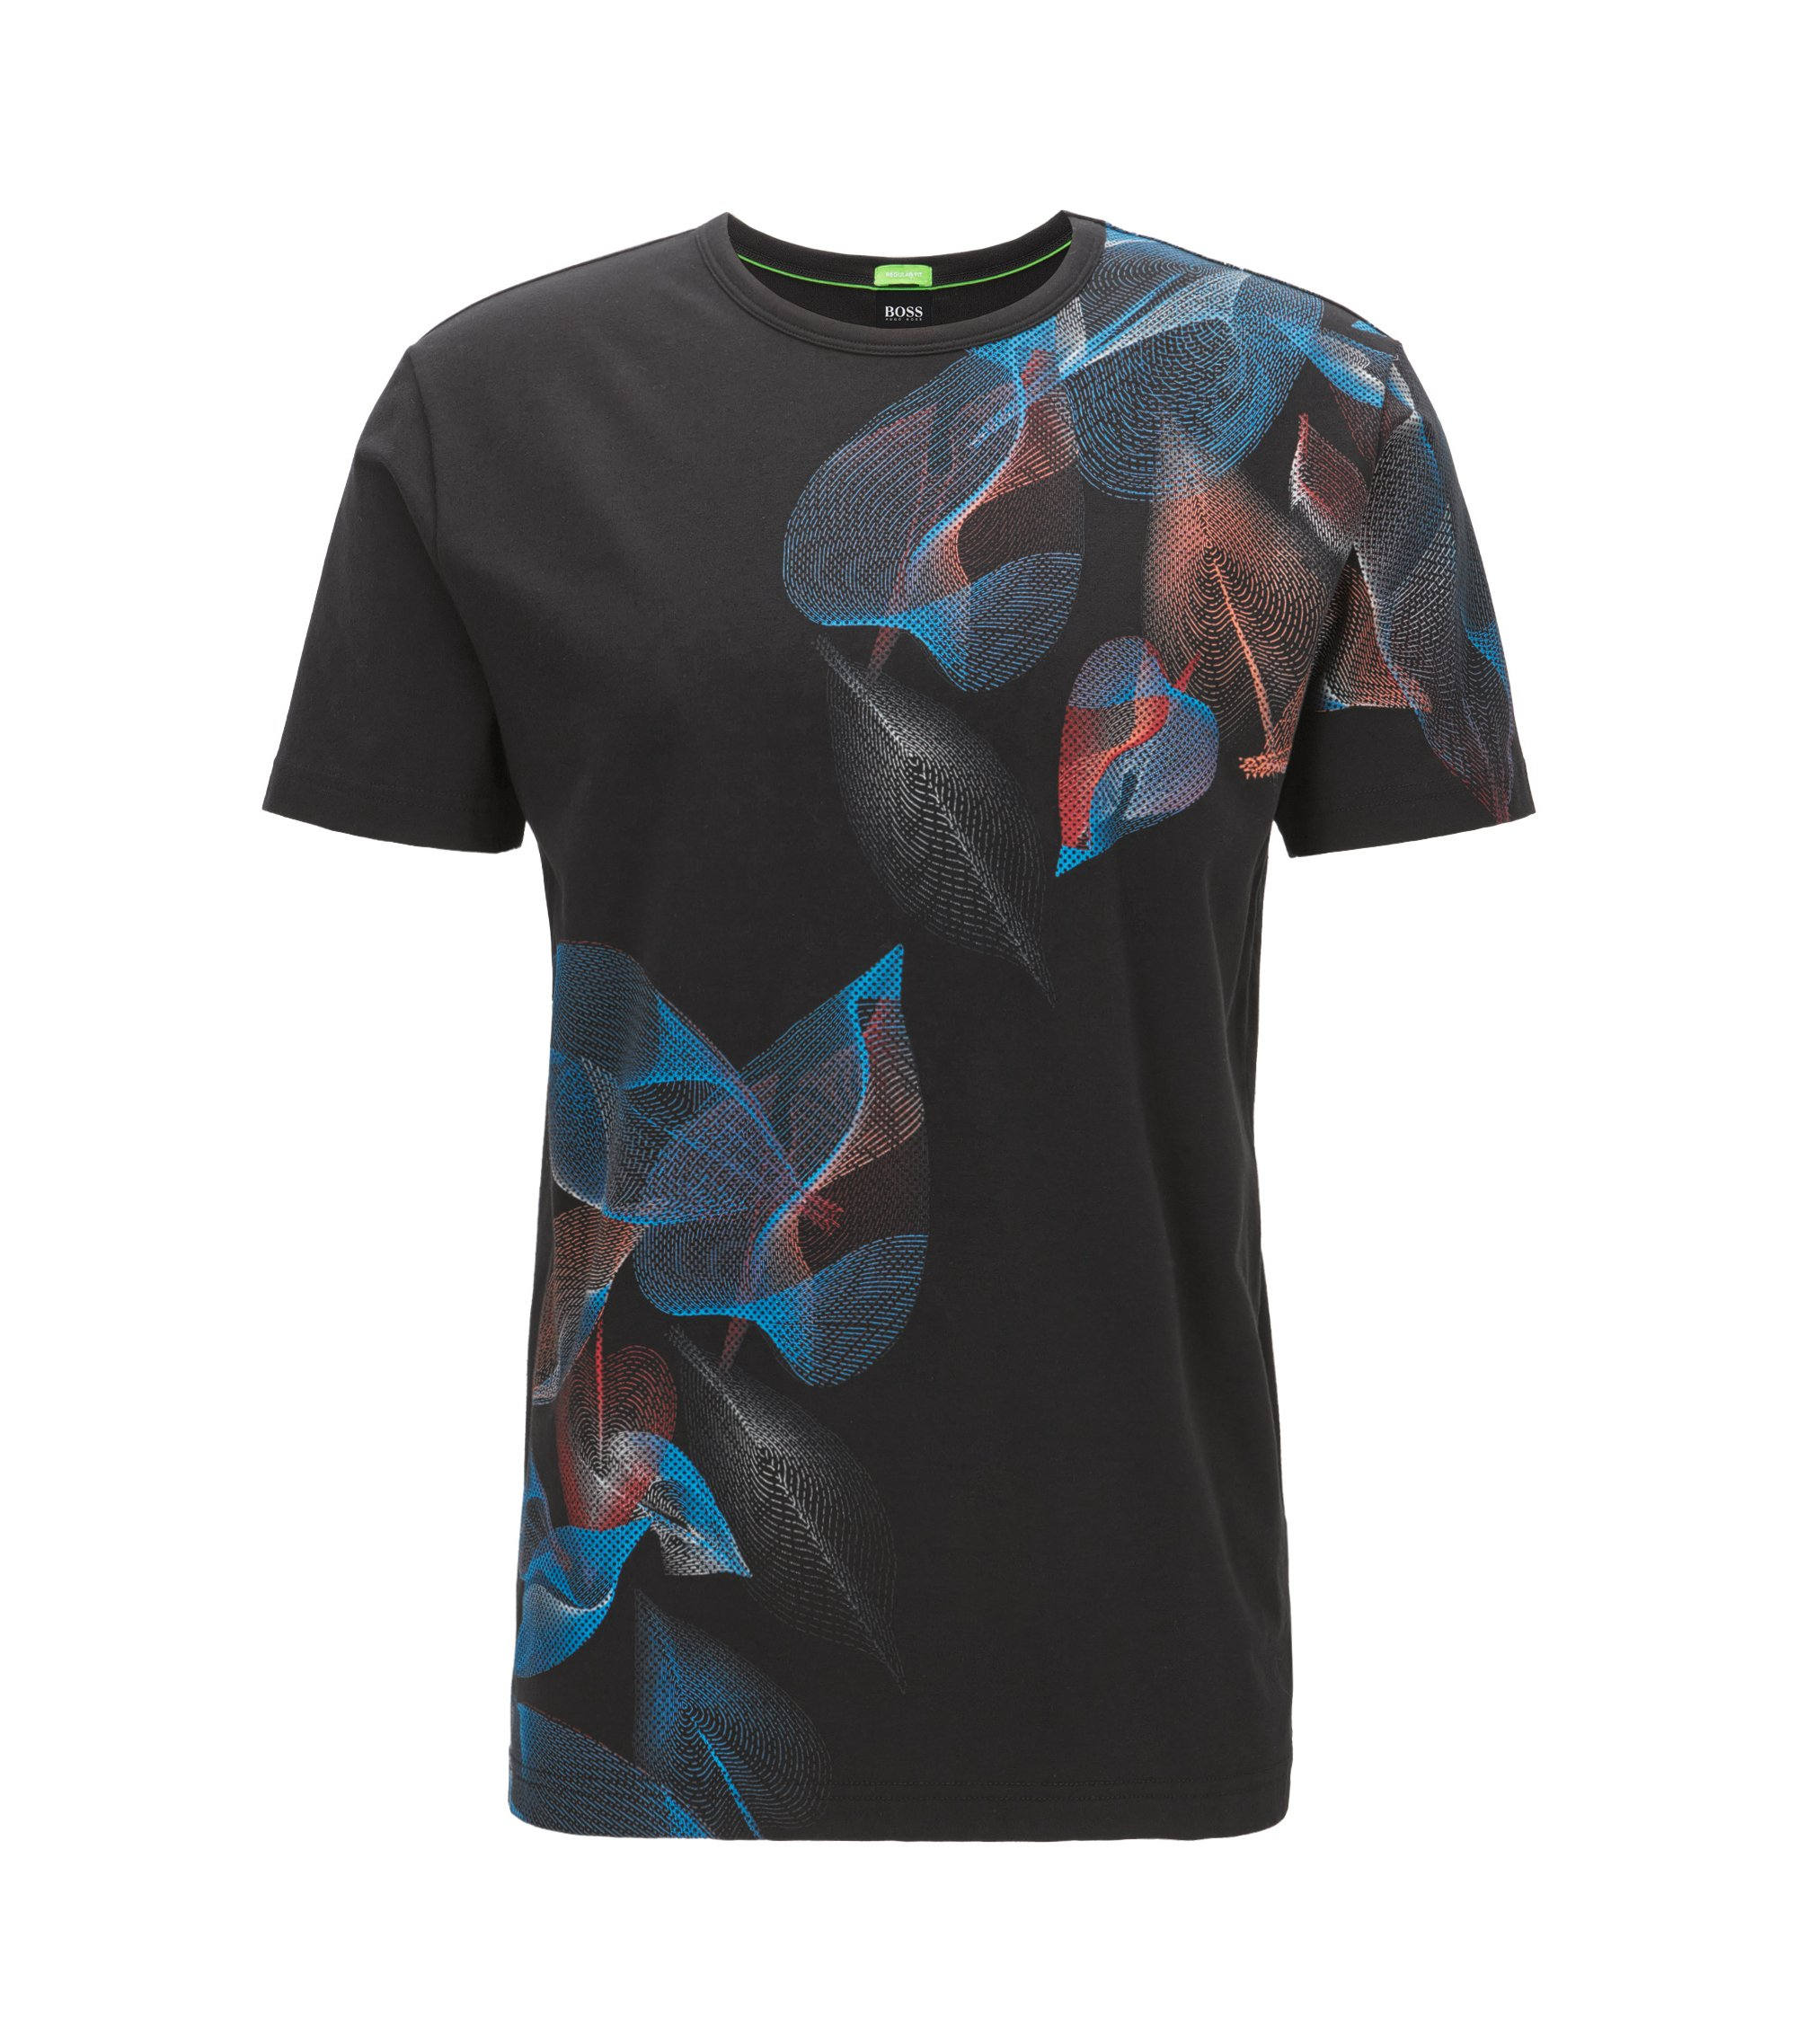 Floral-Print Stretch Cotton Graphic T-Shirt, Regular Fit   Tee, Black